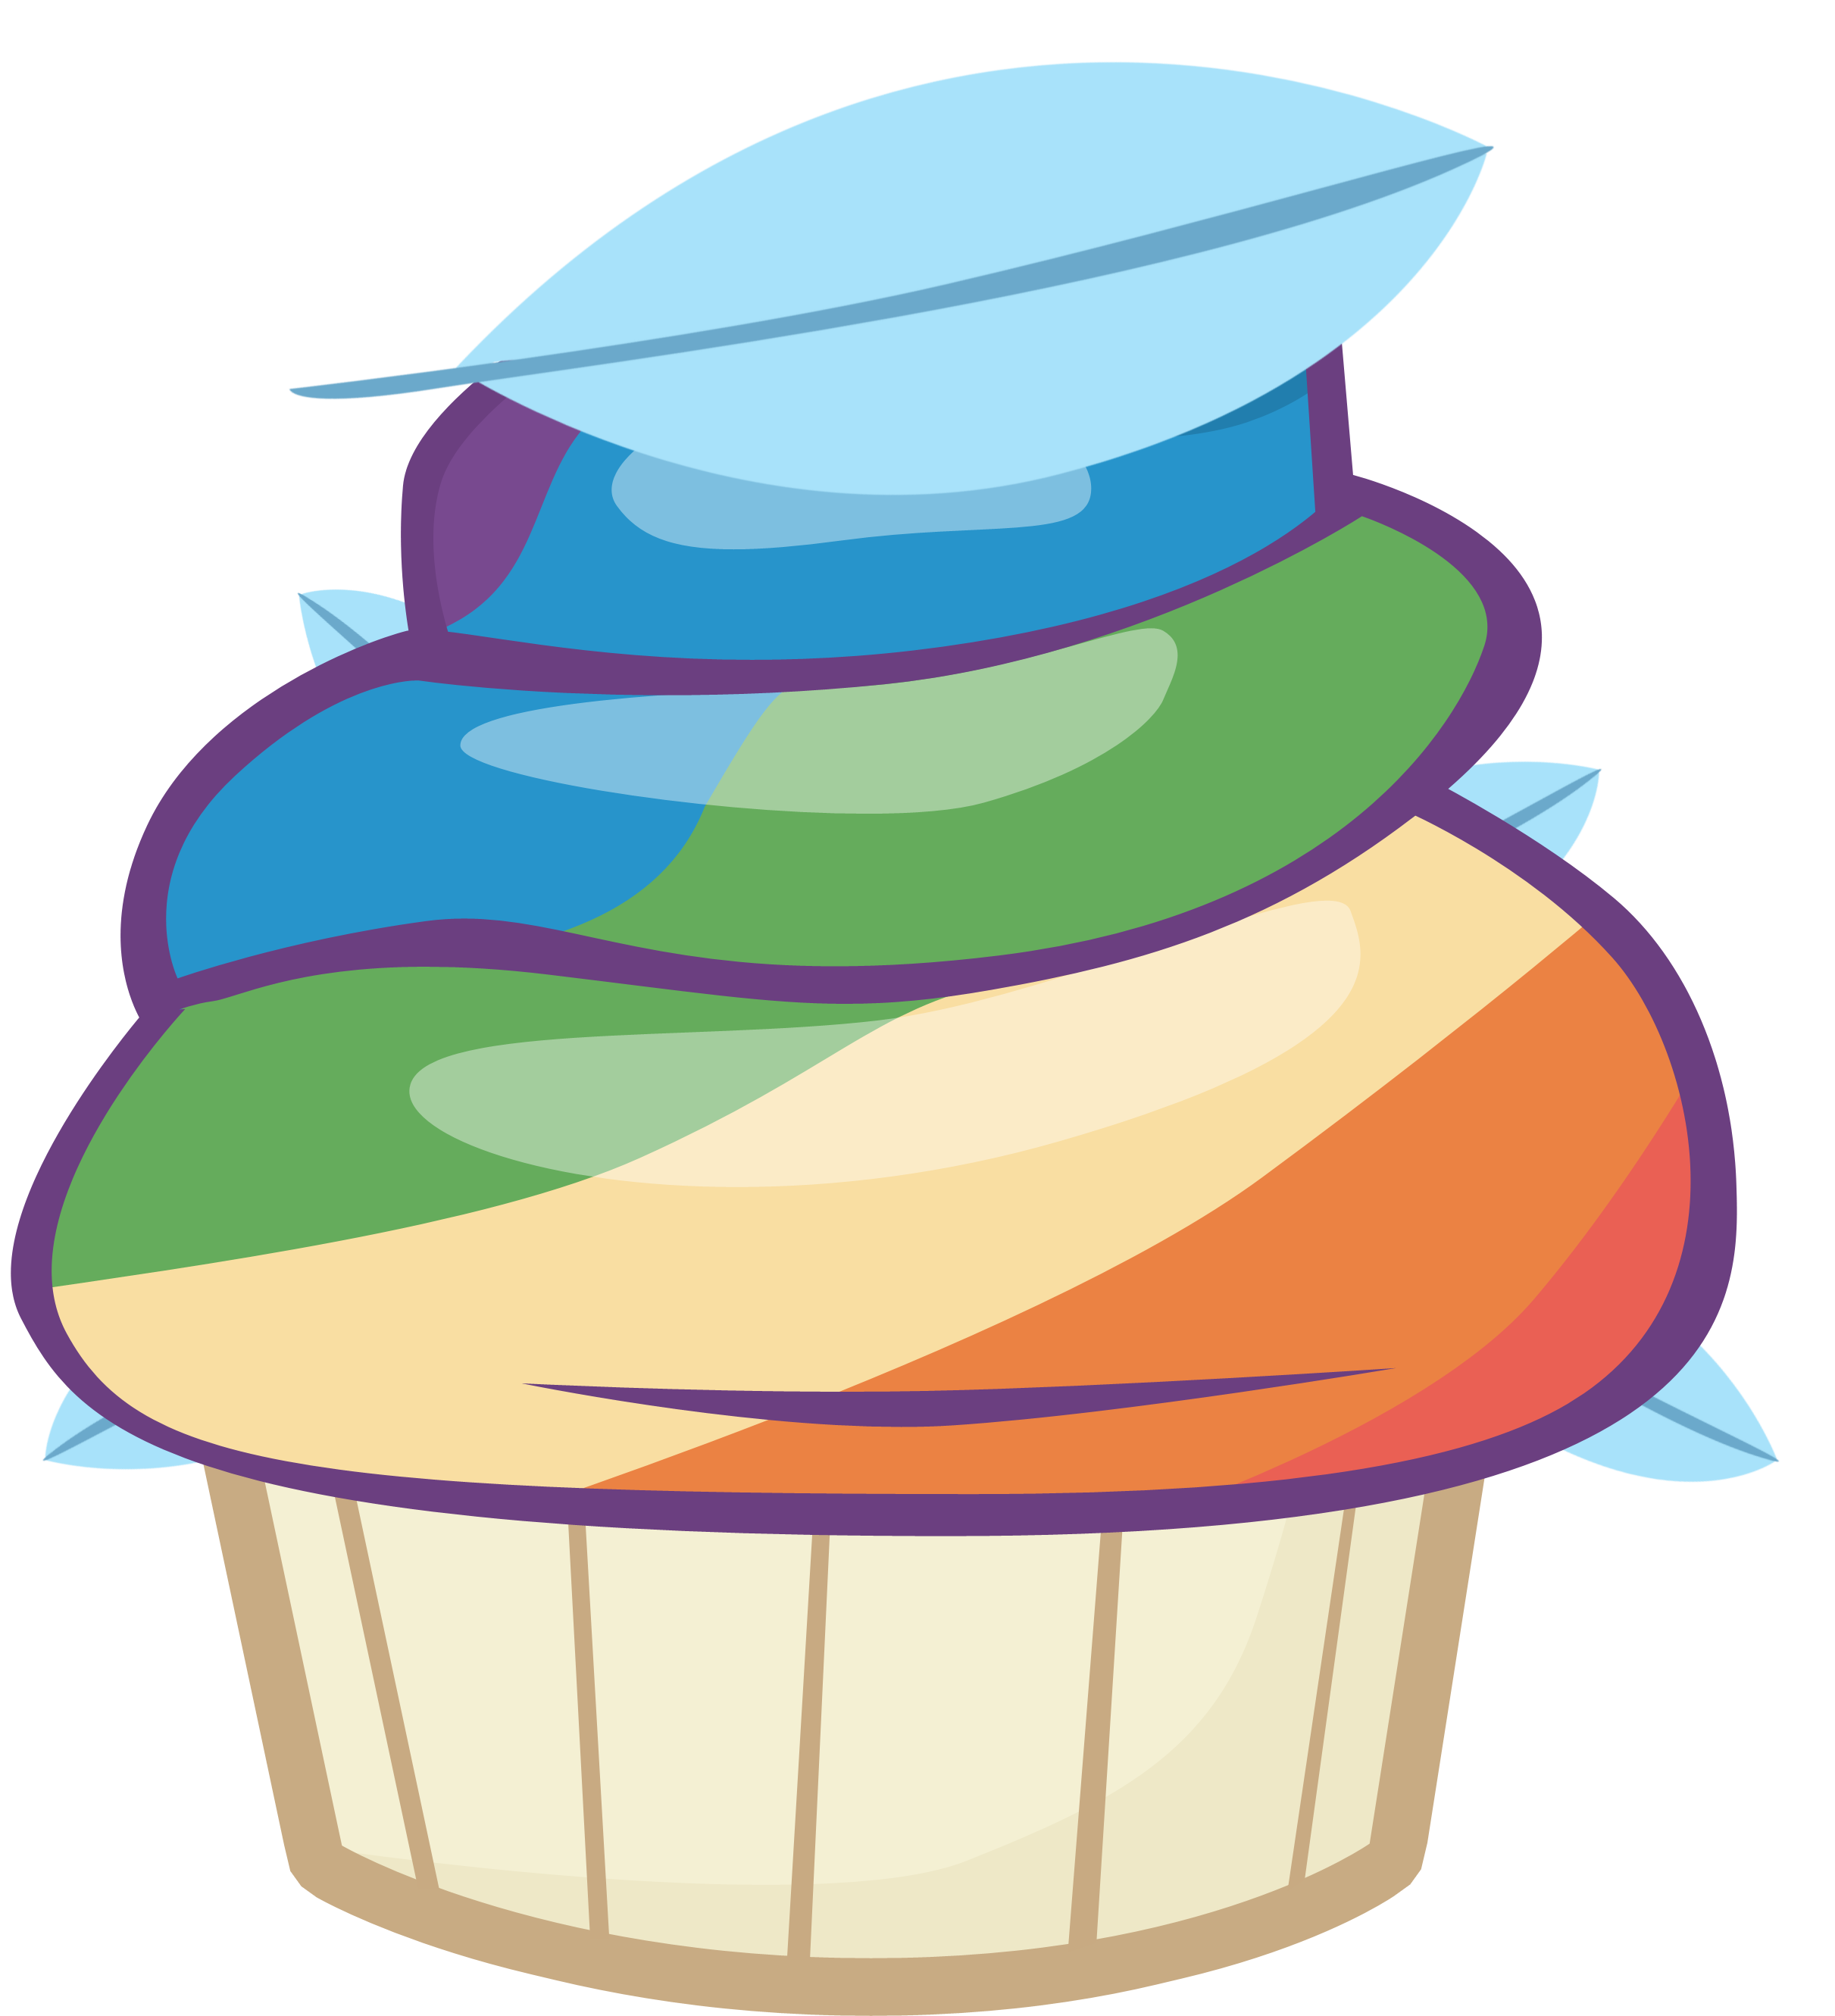 Cupcake Animated Images : Cupcake Cartoon Icon Png - ClipArt Best - Cliparts.co